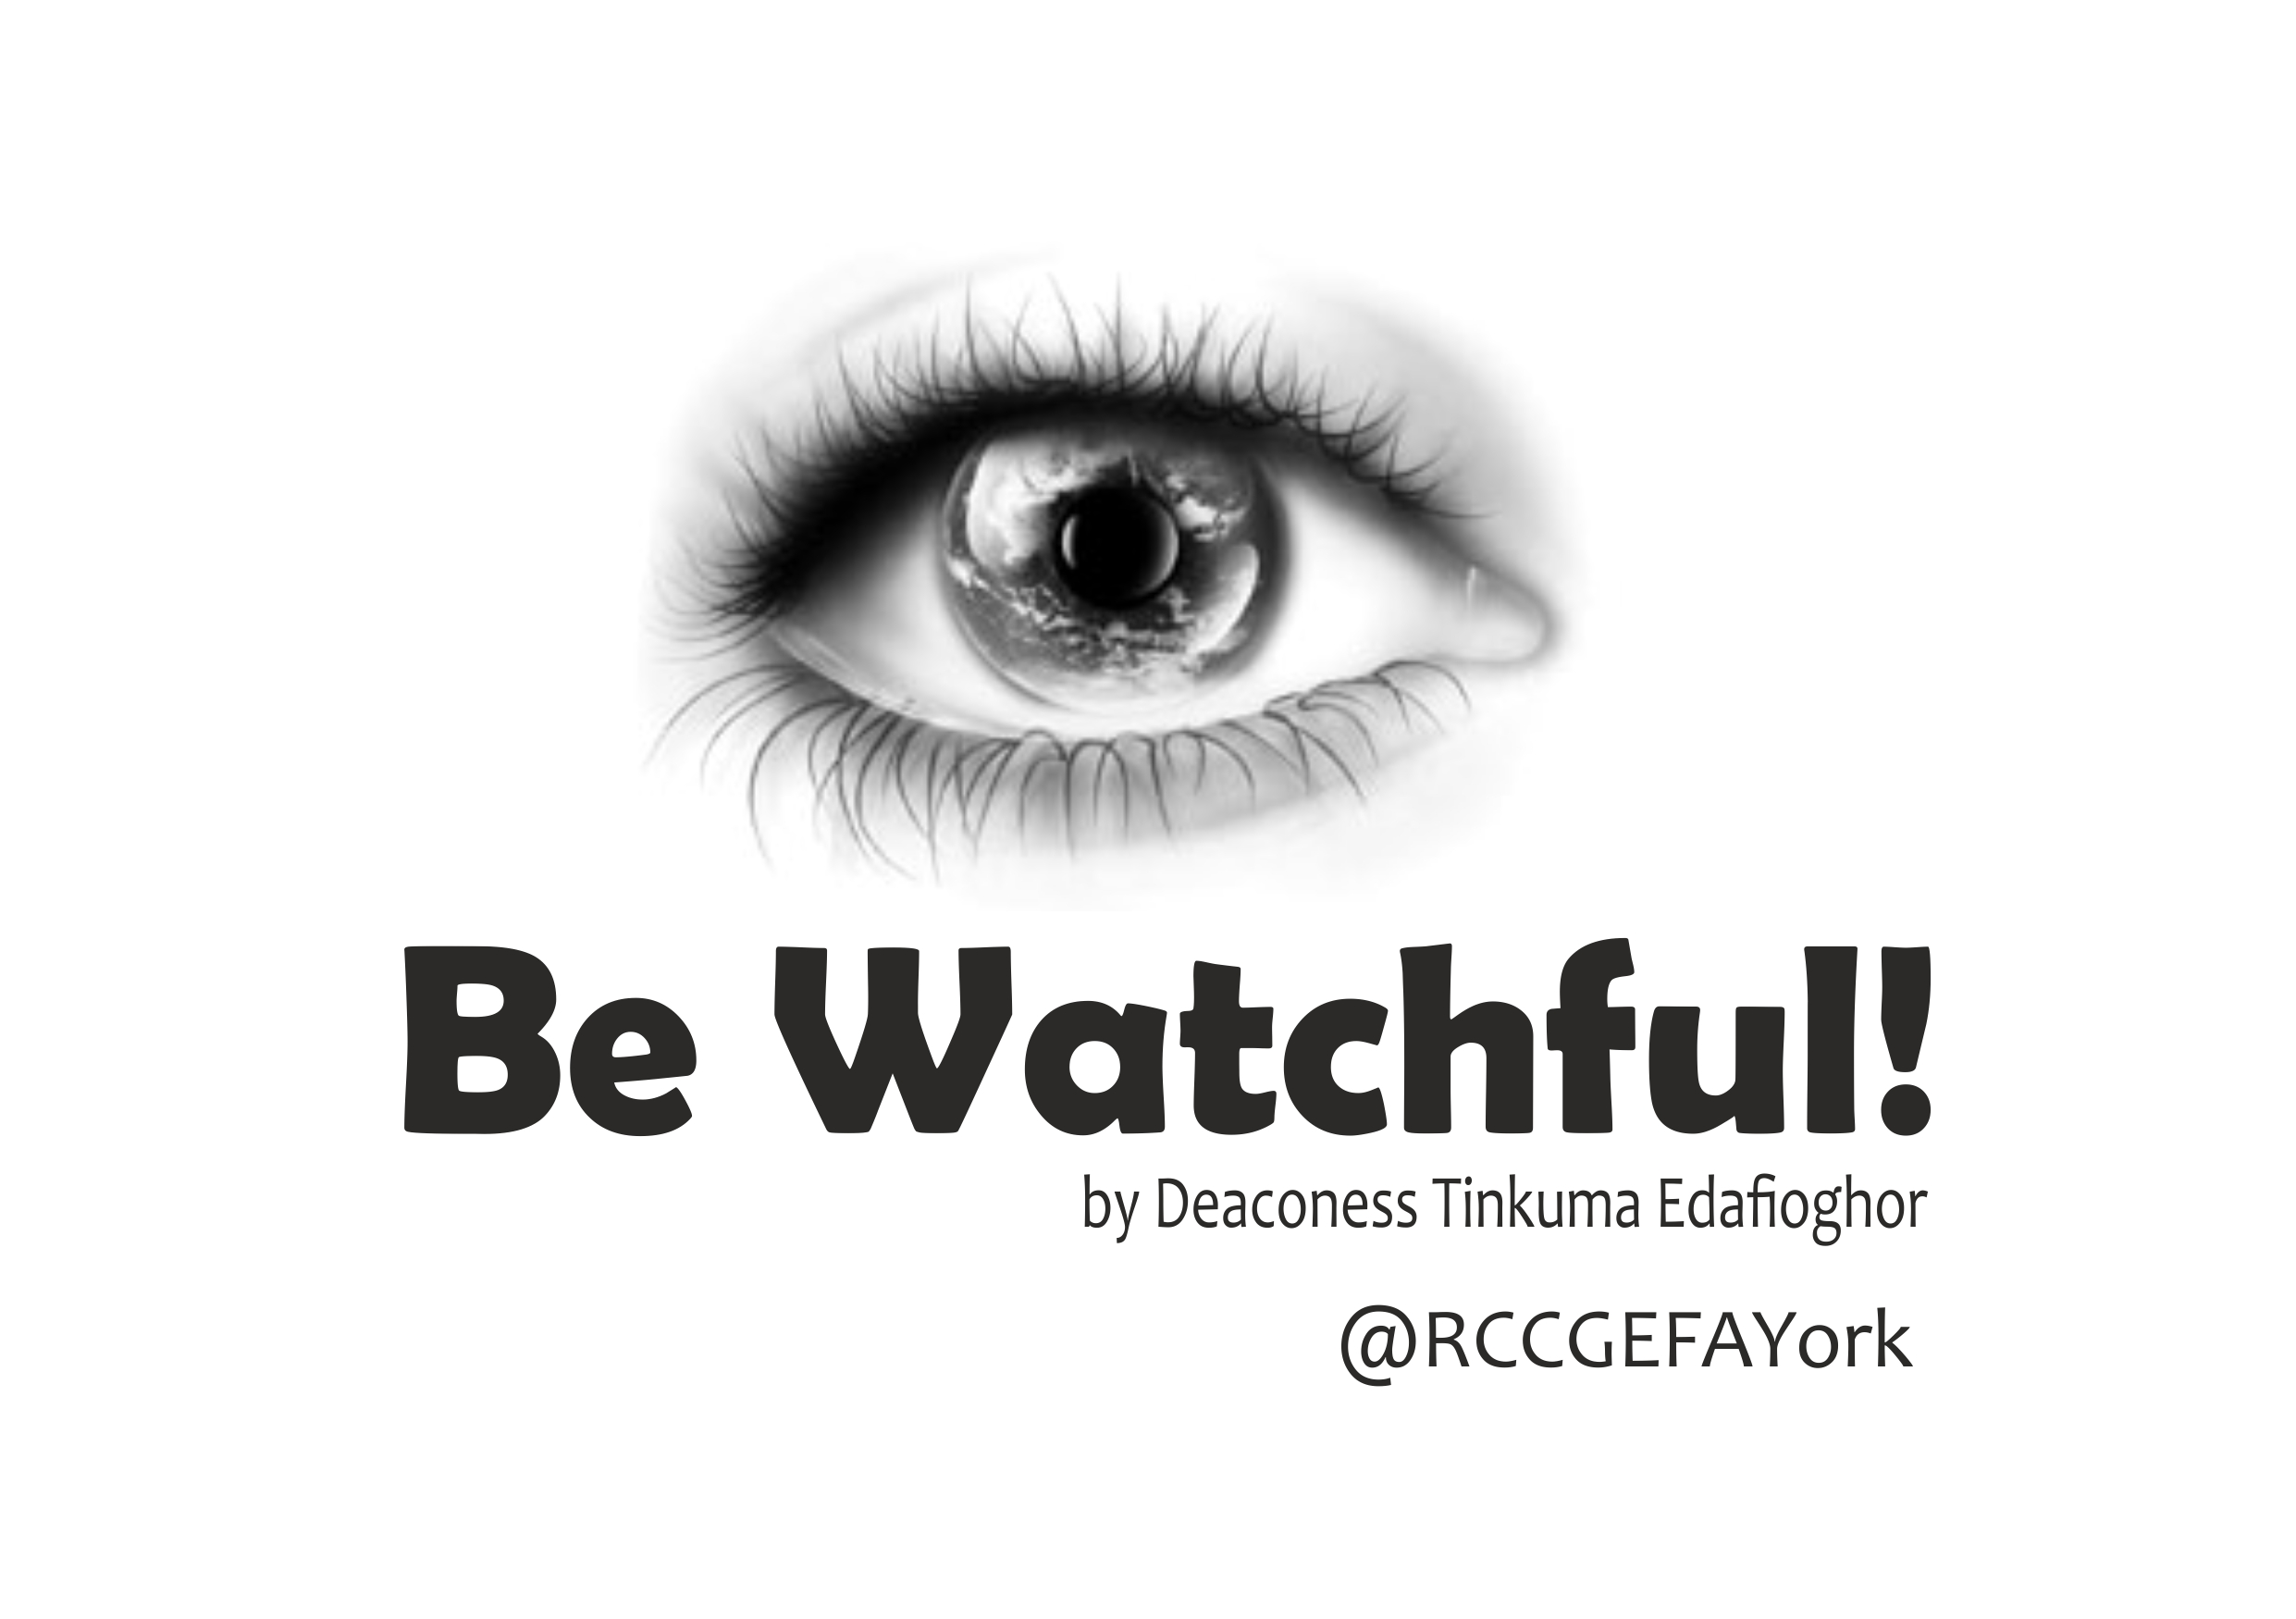 Be Watchful, by Deaconess Tinkuma Edafioghor